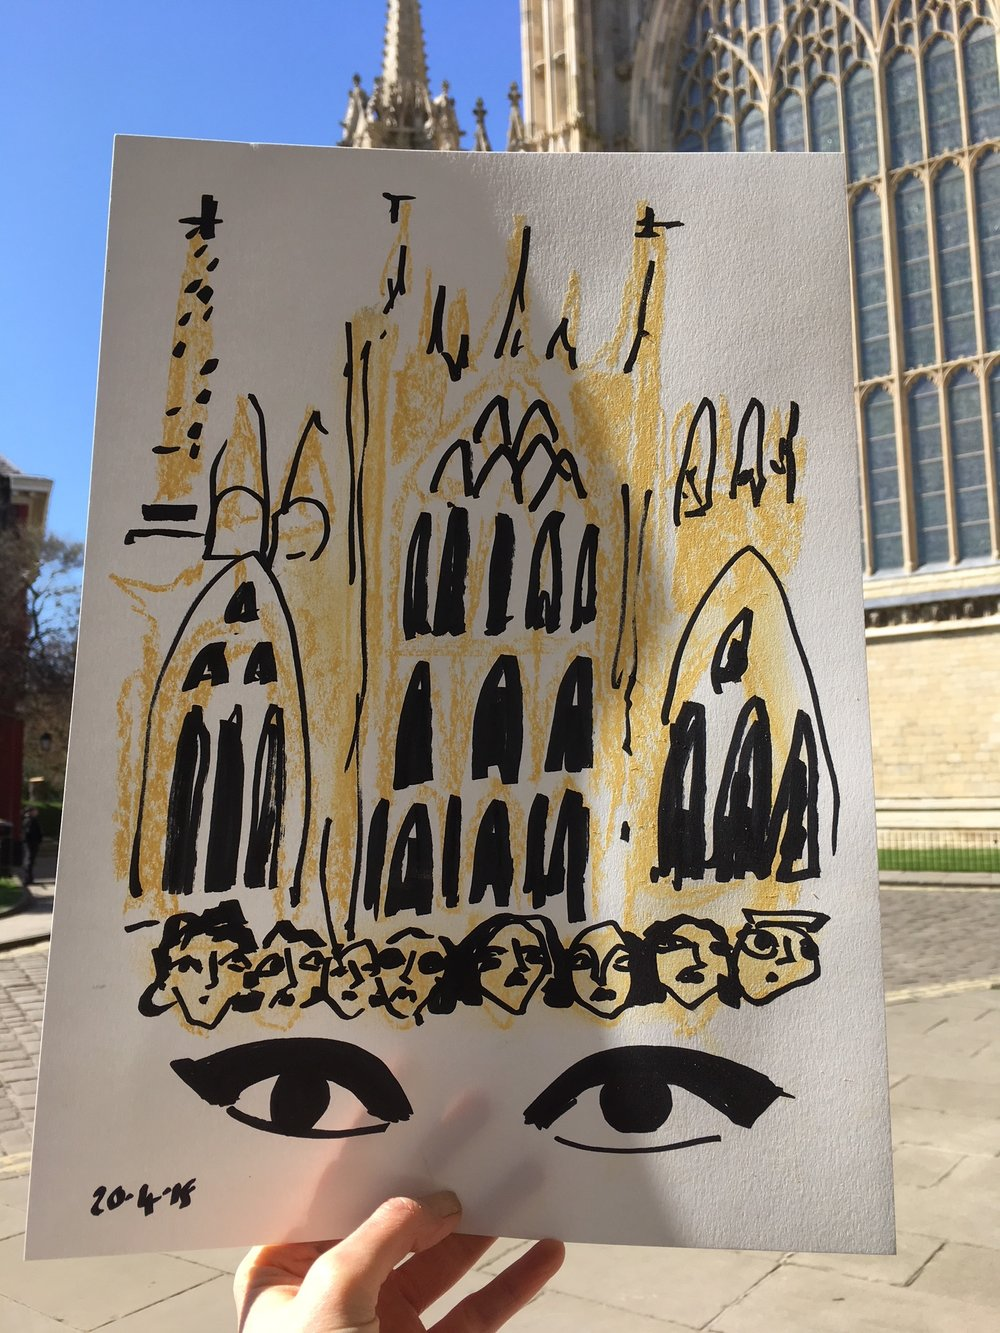 My 5 minute power sketch outside York Minster